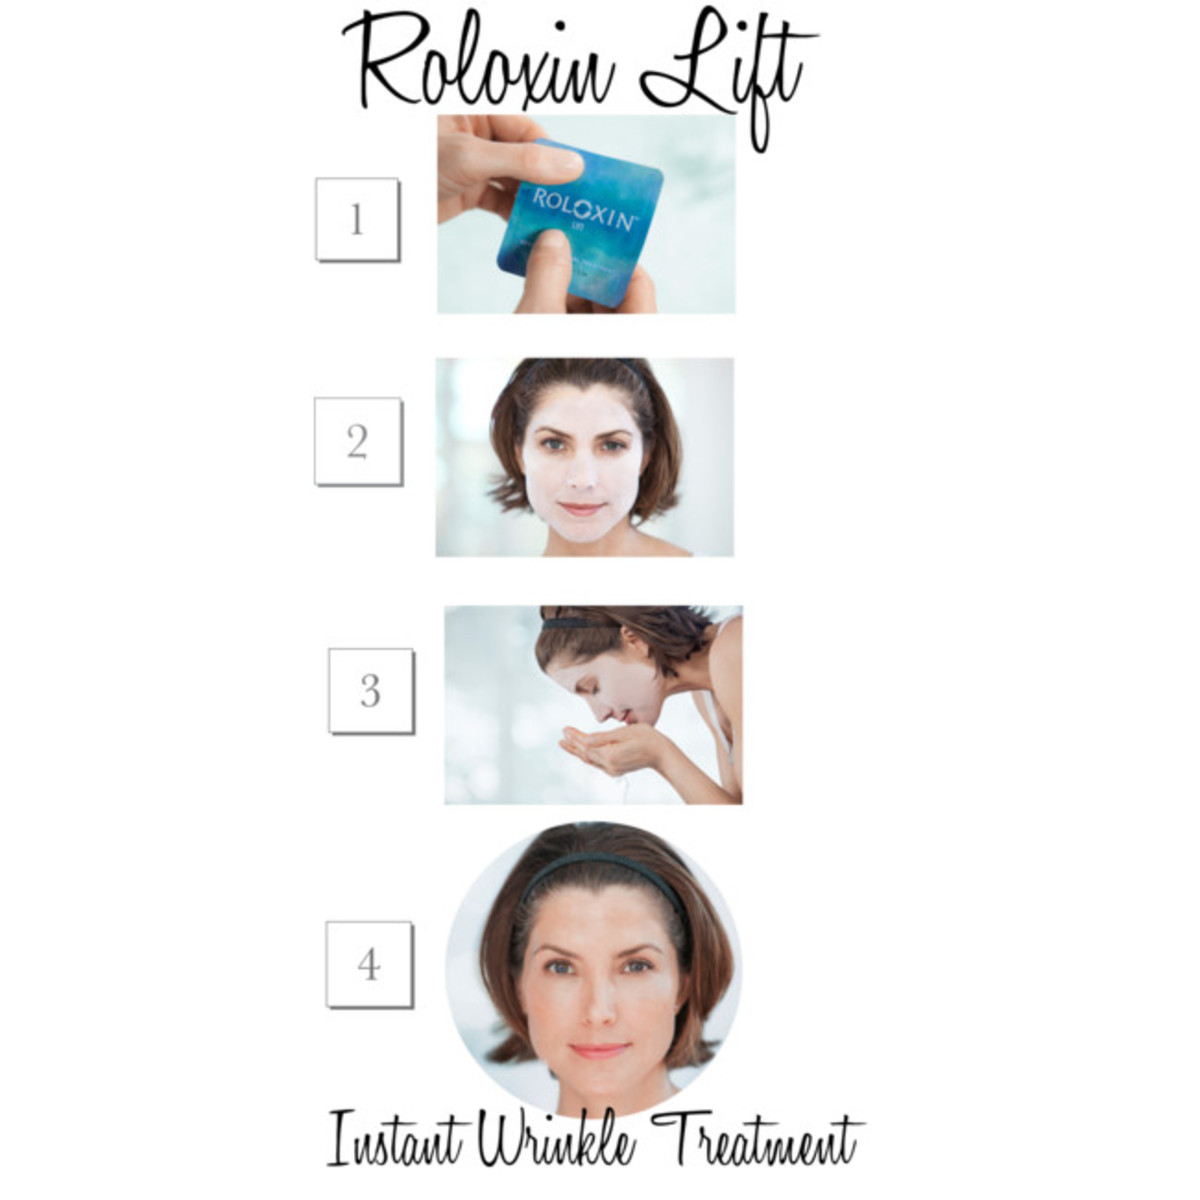 roloxin lift instant wrinkle relief